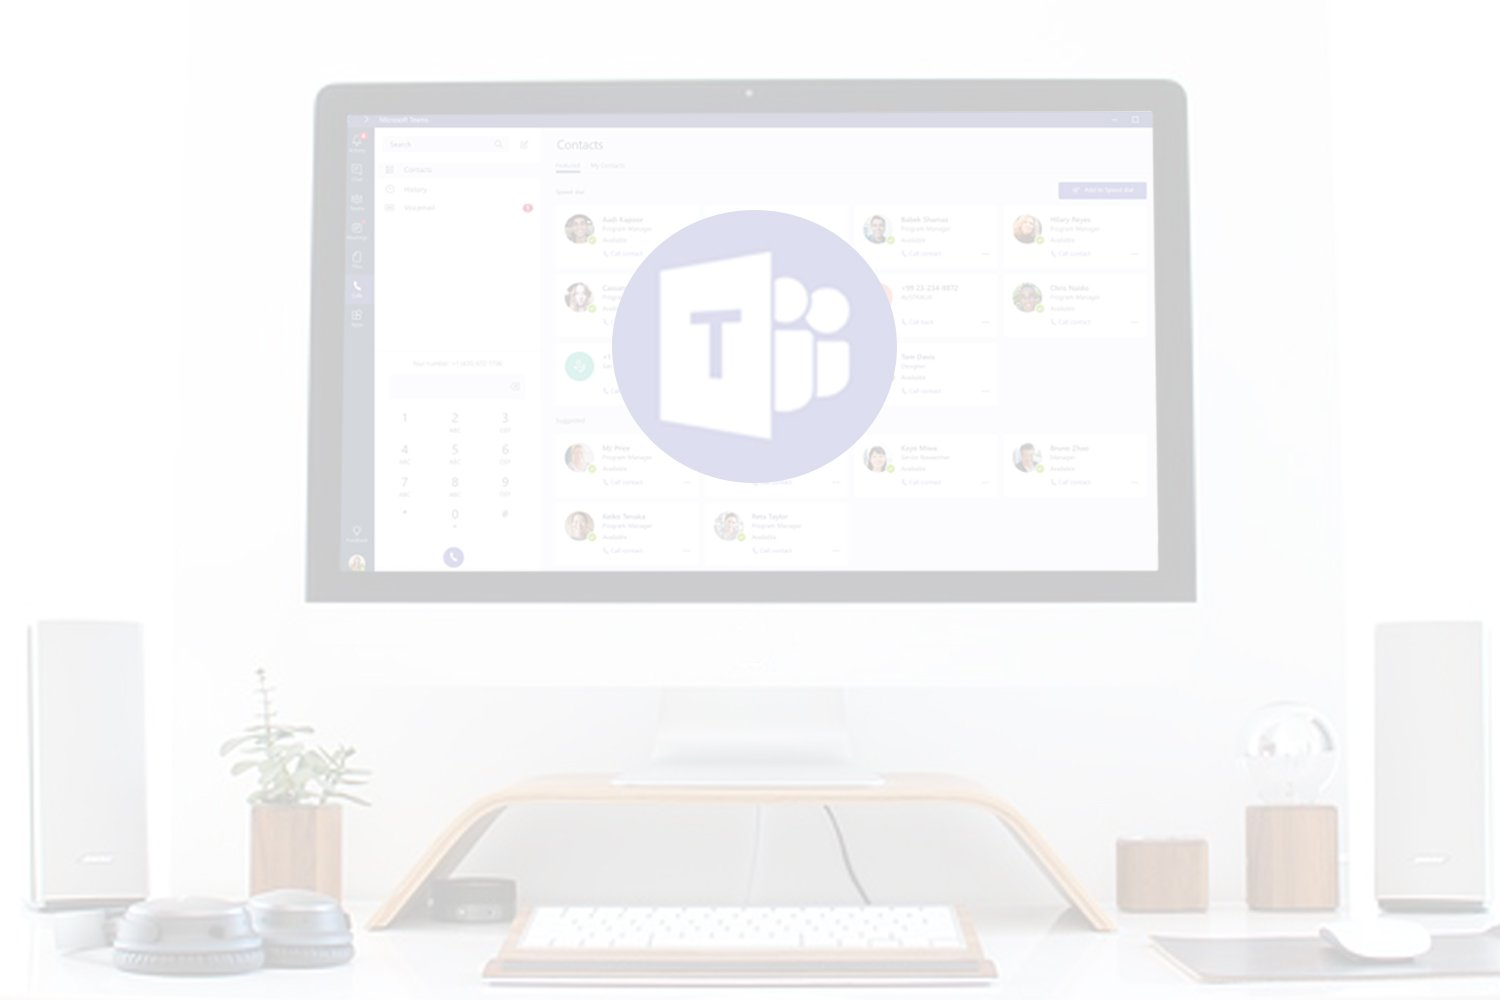 Microsoft Teams Roadmap: A Brief Guide